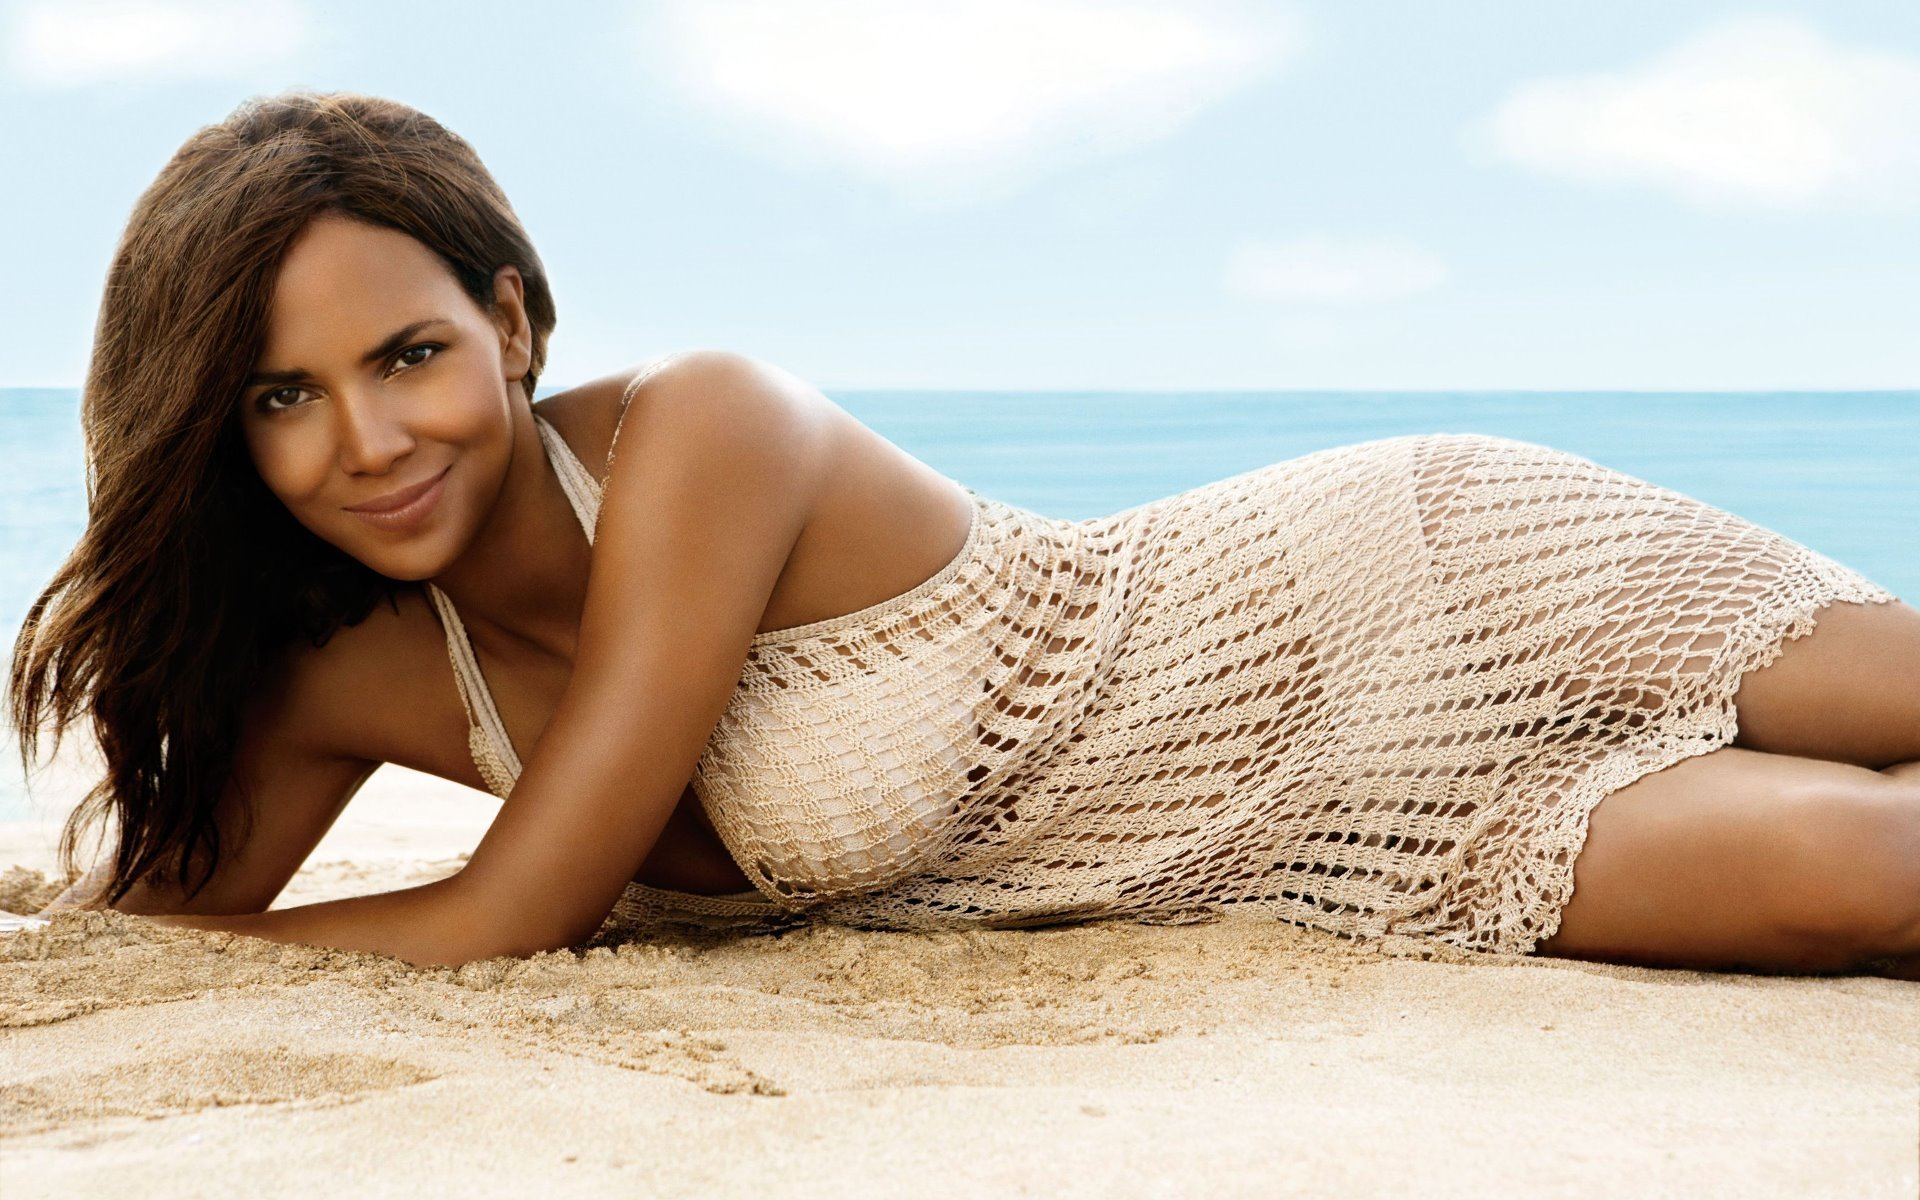 Halle Berry en bikini et robe filet sur la plage